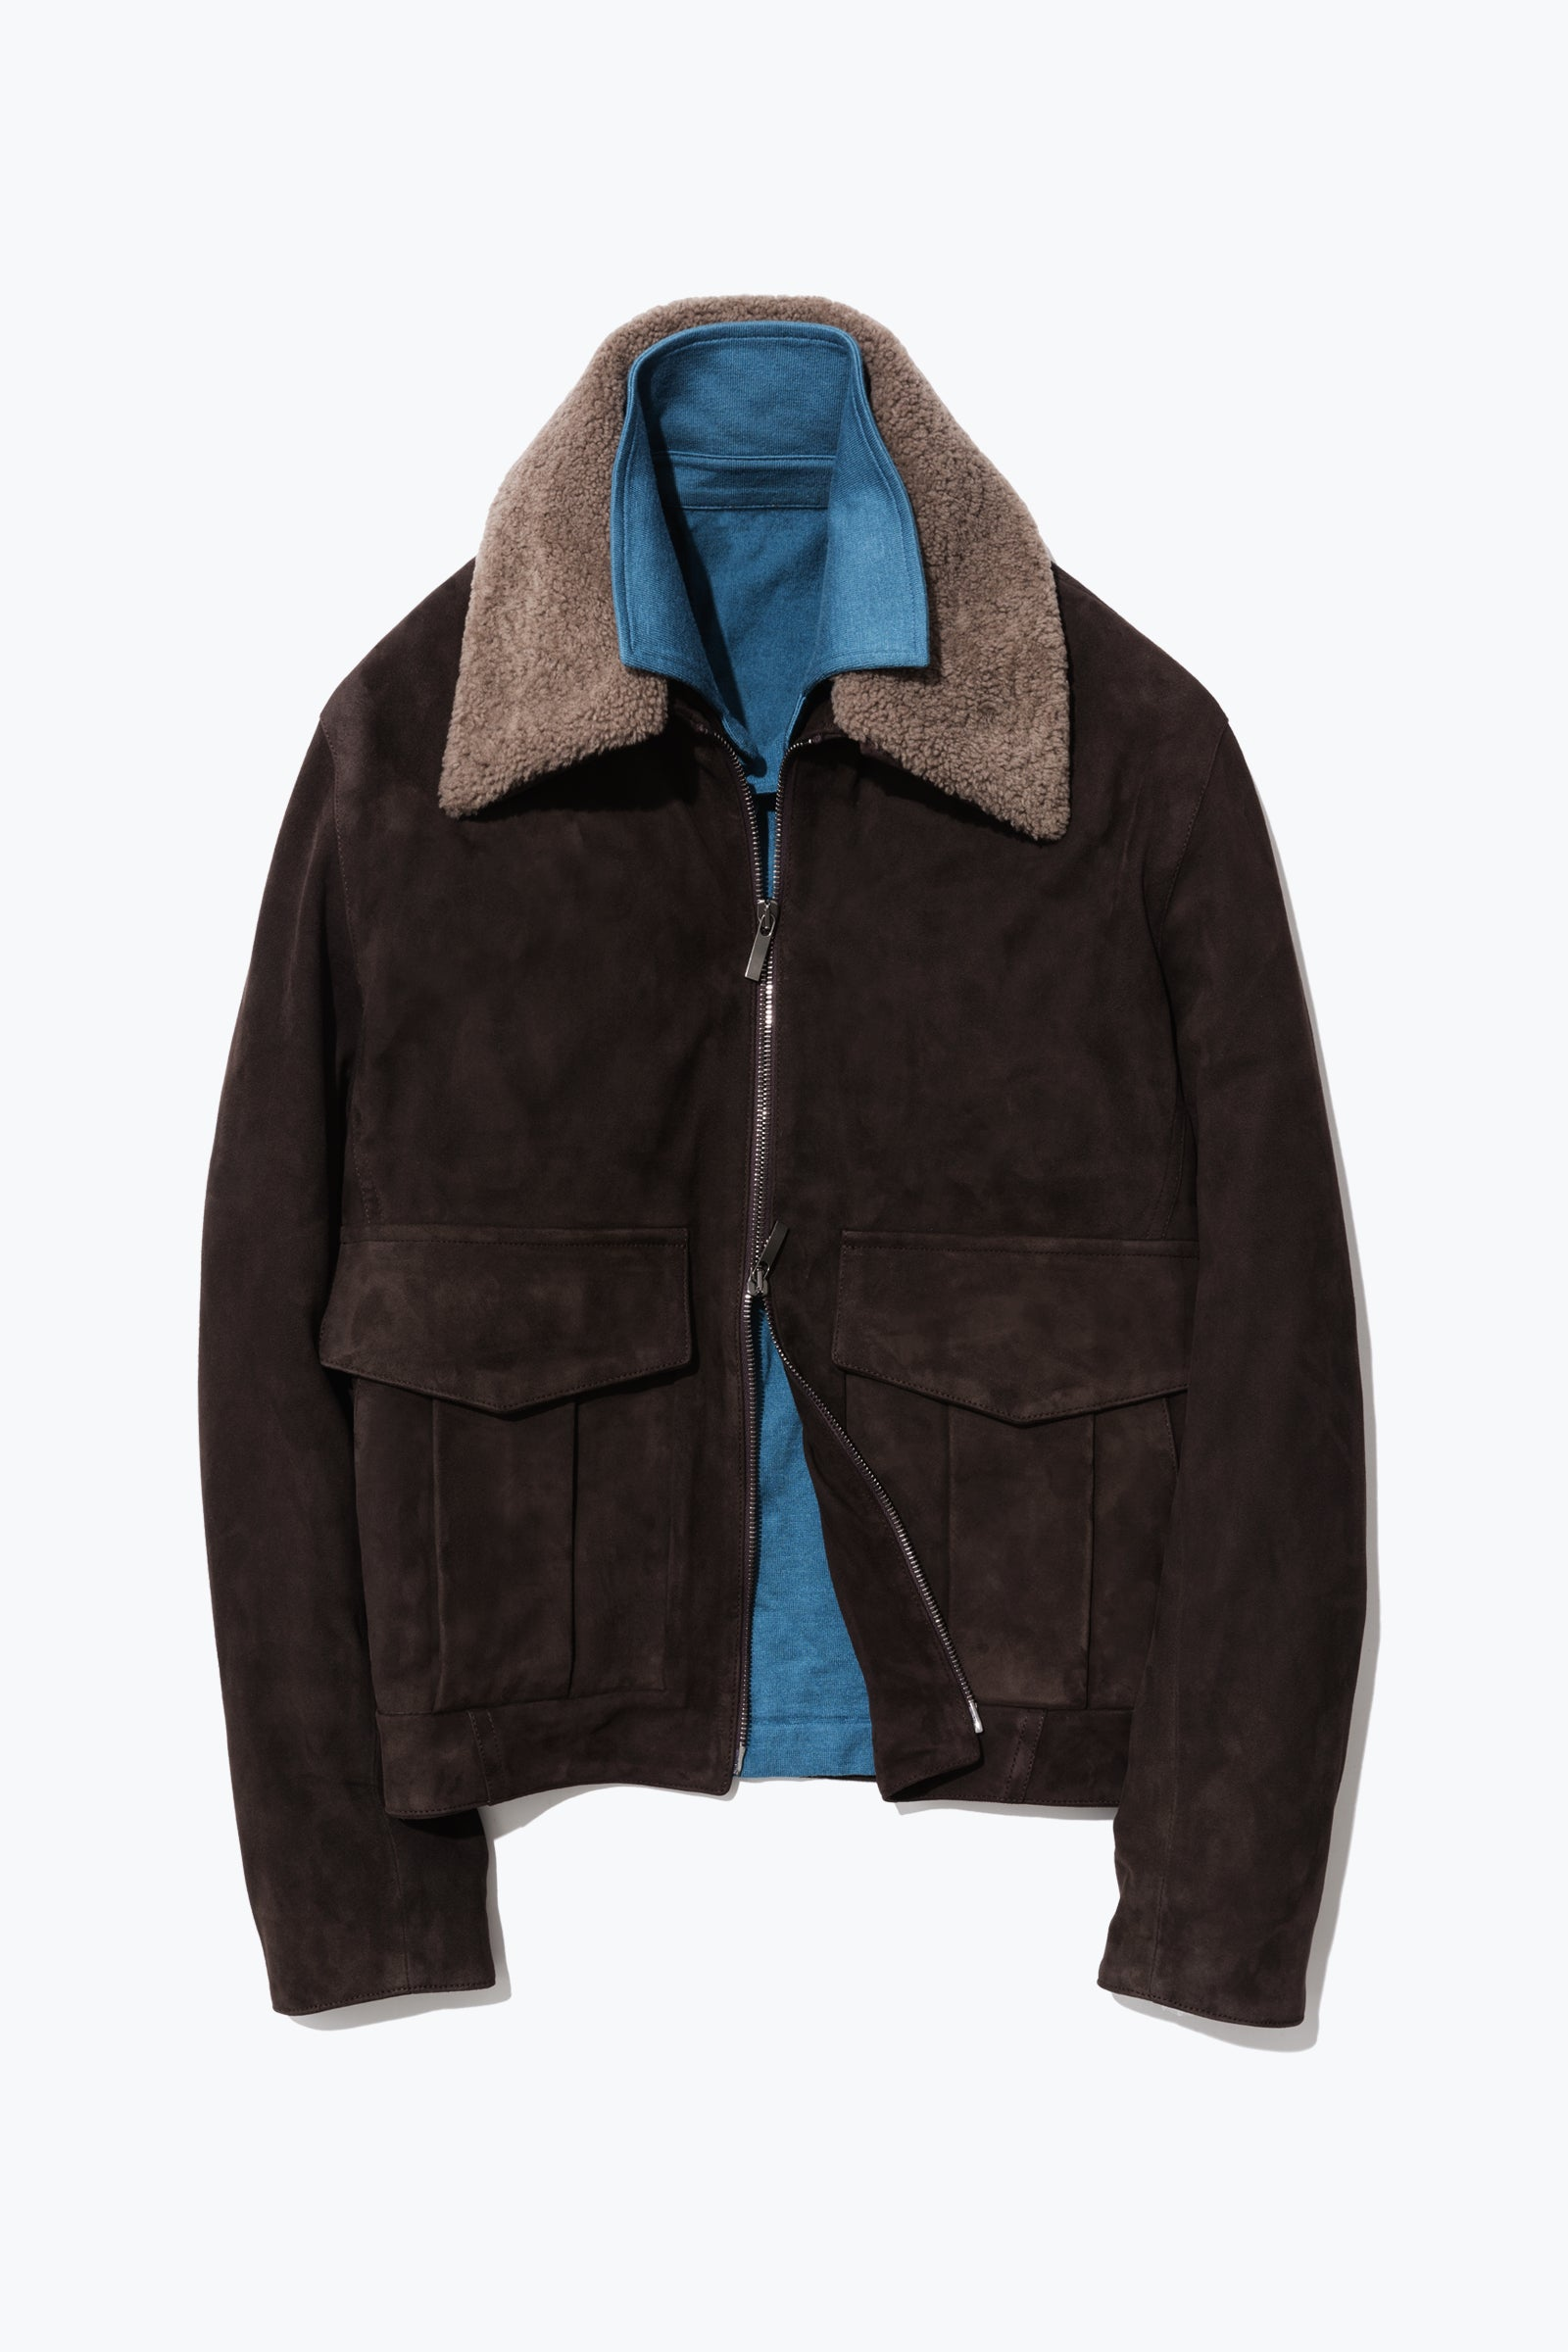 MTO Outerwear - 002 - Suede Flight Jacket (Chocolate)